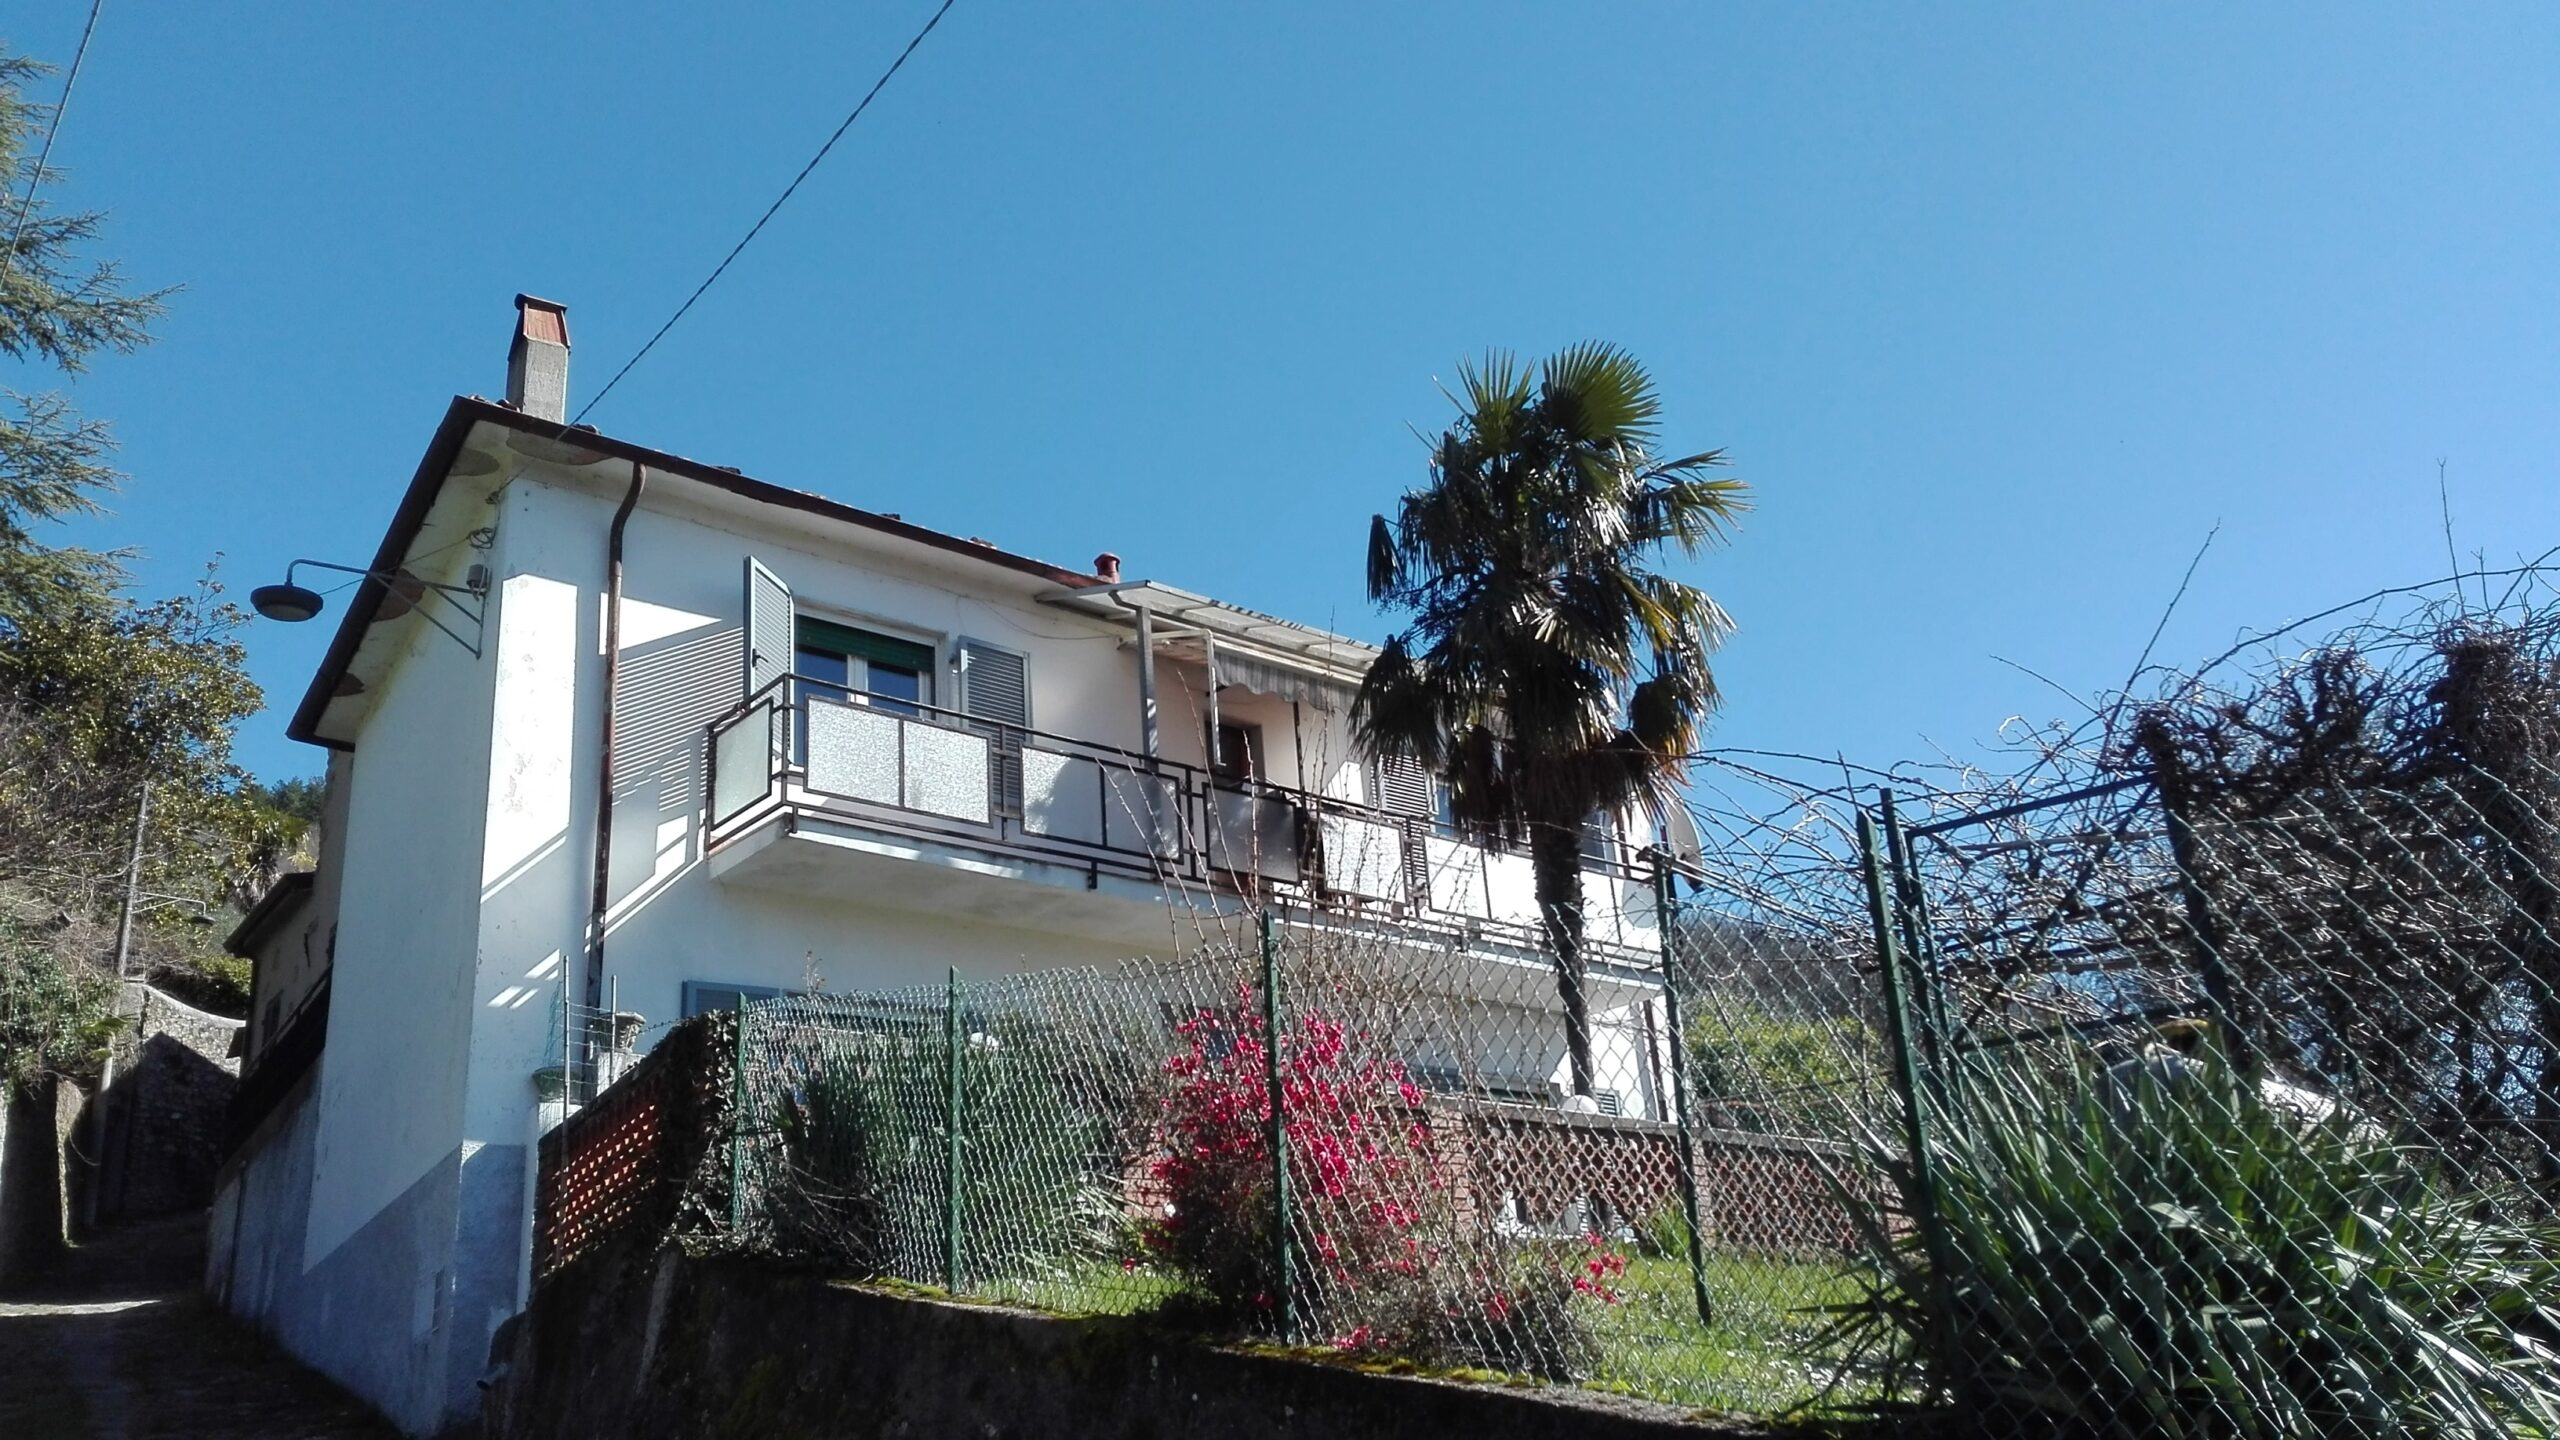 Detached house with garden, with views from DREAM !!!!!Fivizzano !!!! ref.2097